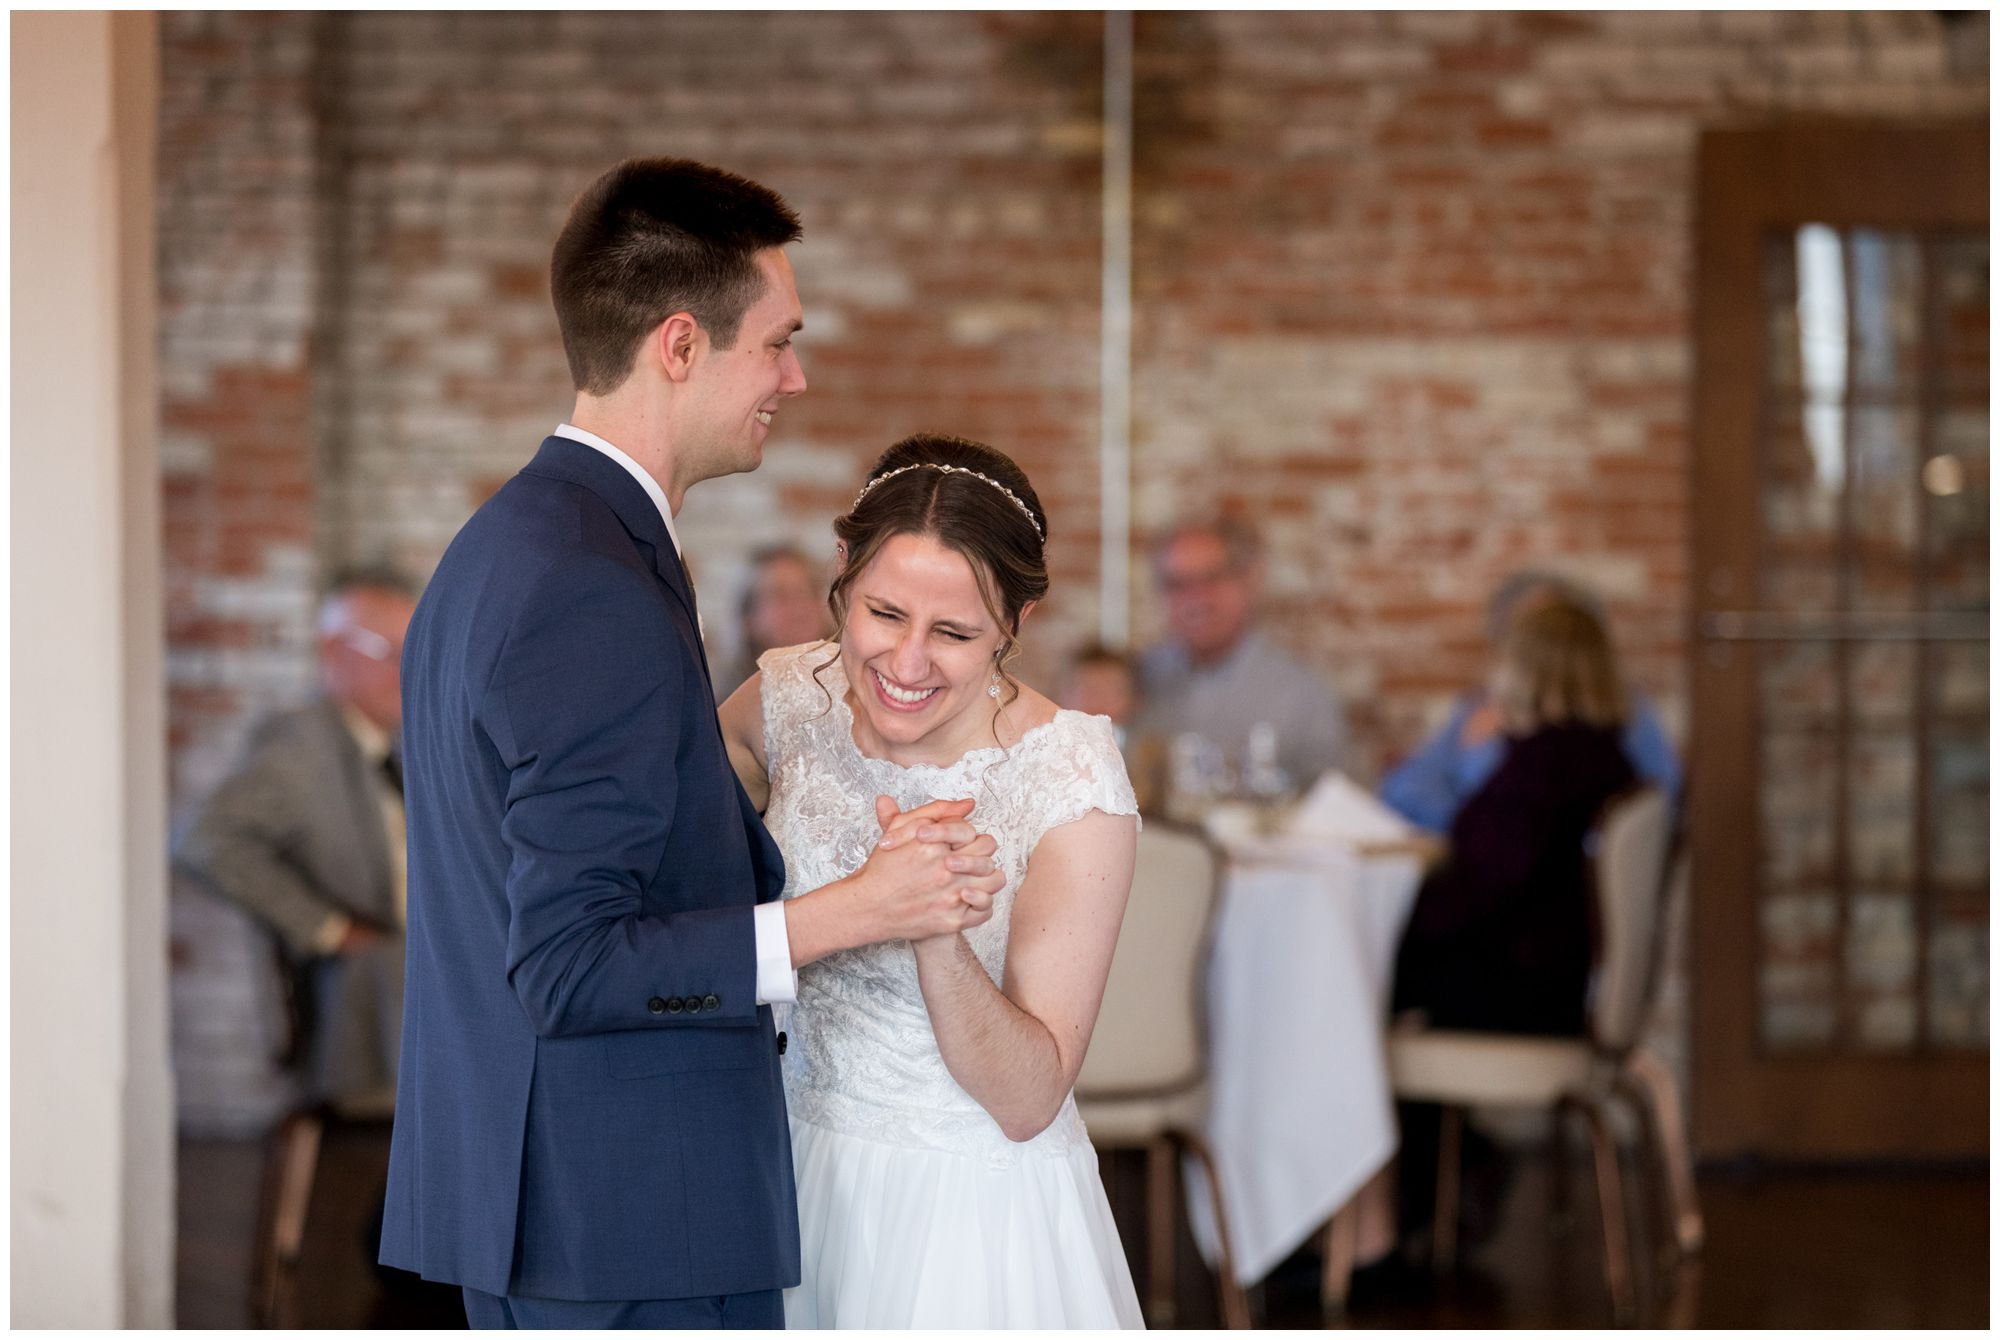 bride and groom first dance at Bread & Chocolate wedding reception